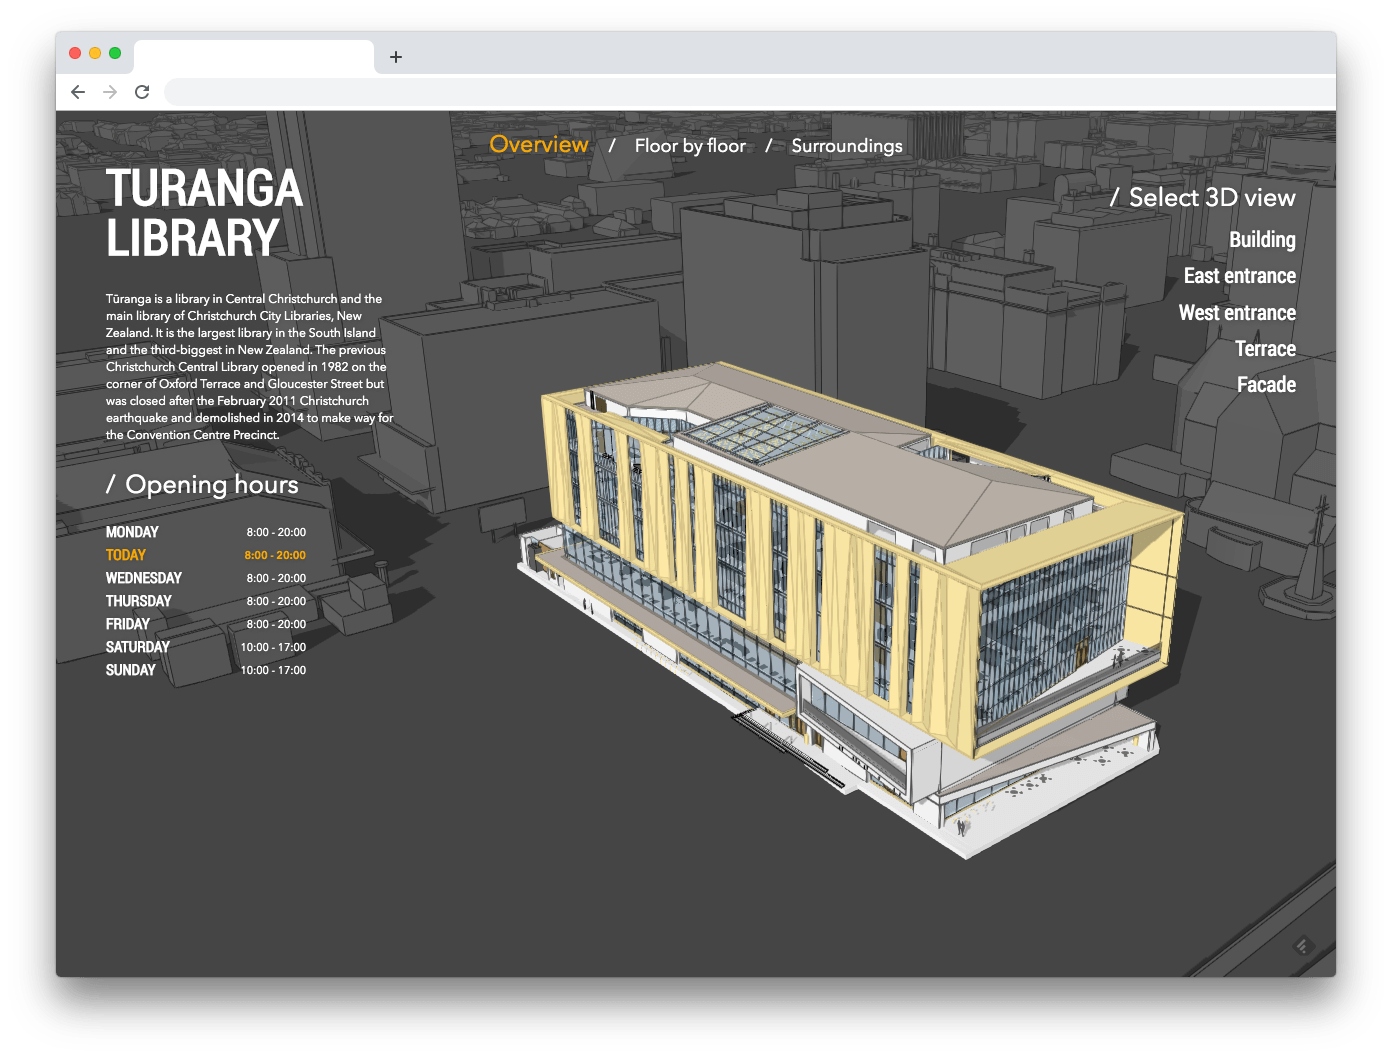 Building Viewer web site configured with Turanga Library building